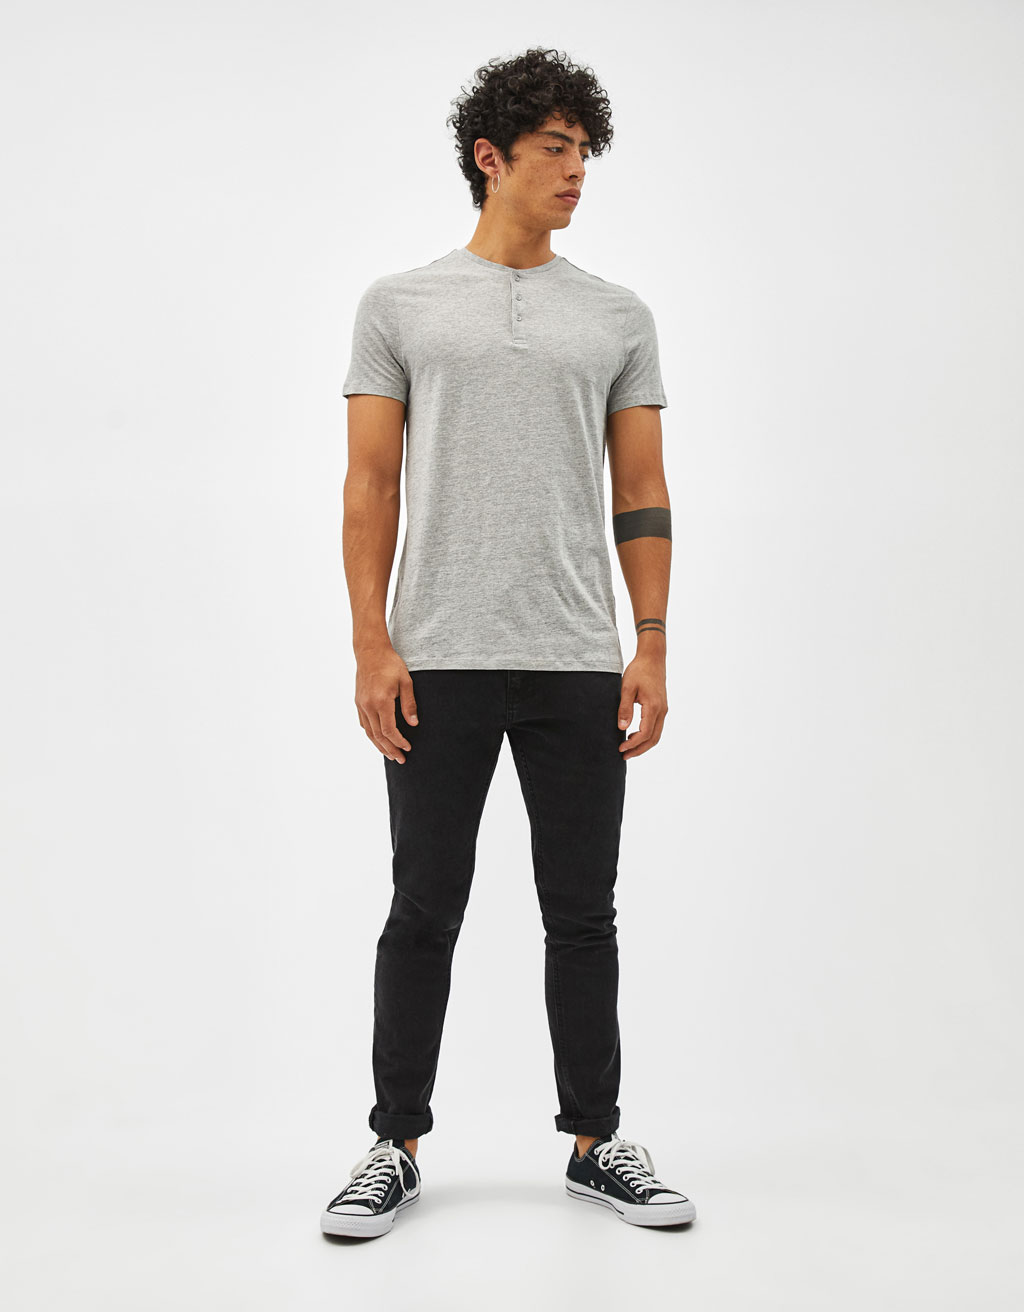 Button neck t-shirt